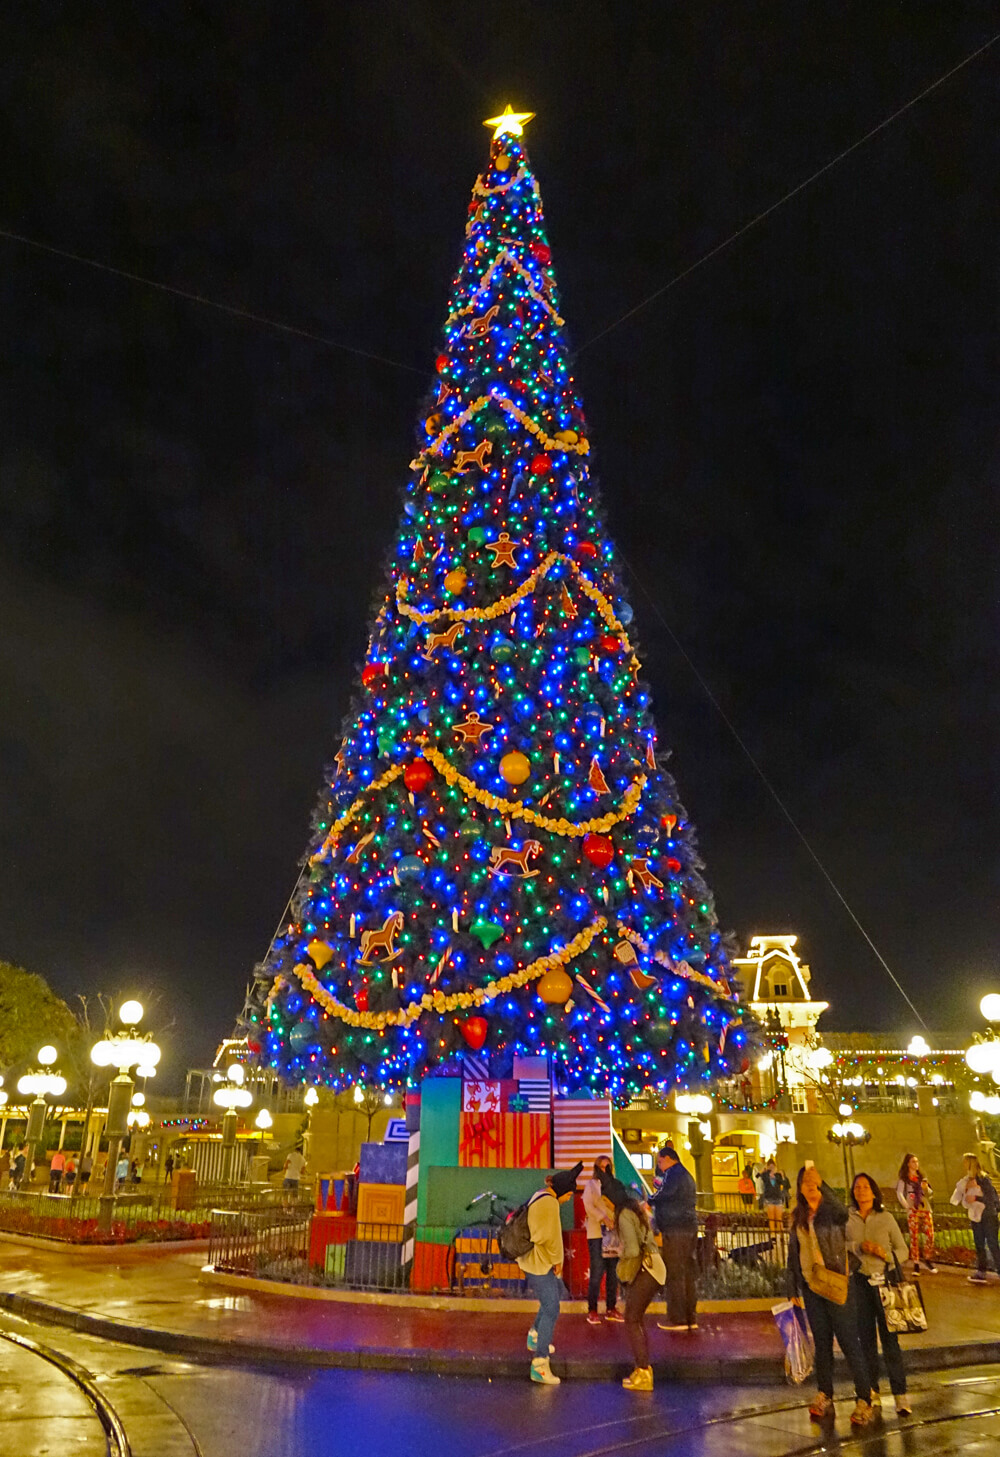 disney world holiday events 2018 magic kingdom tree - Disney World Christmas Decorations 2017